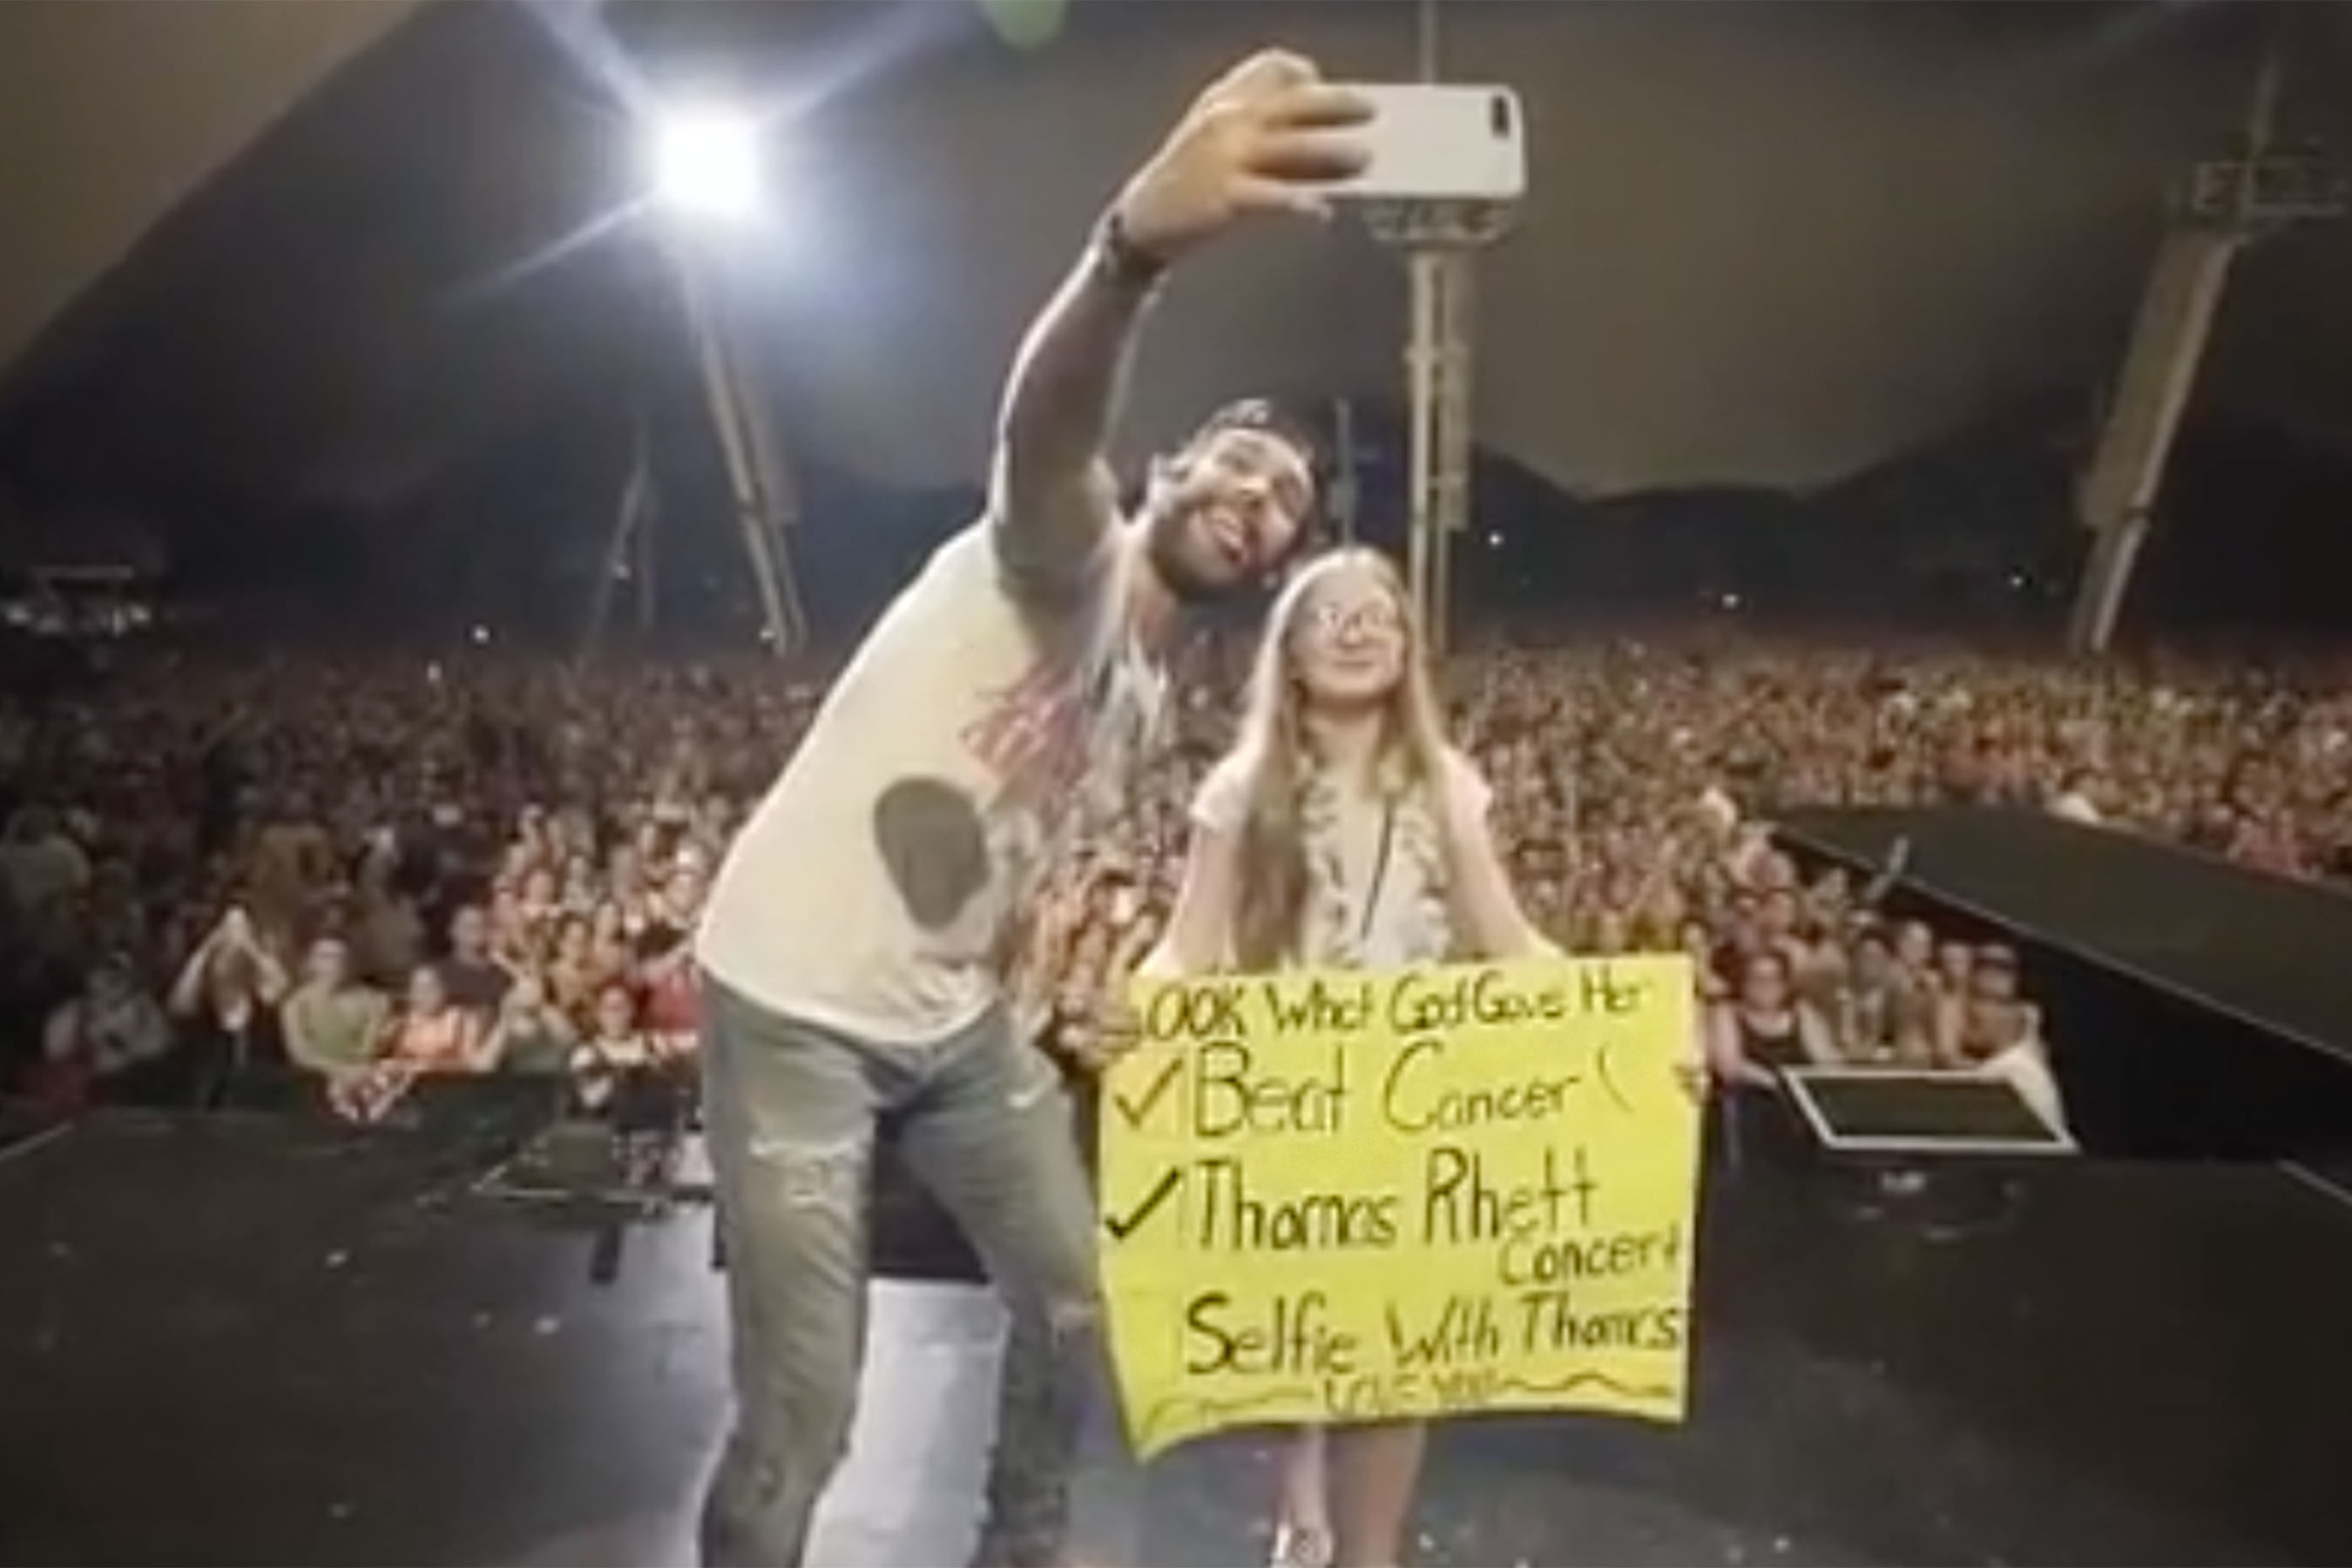 Thomas Rhett Stops His Concert to Make a Young Cancer Survivor's Wish Come True